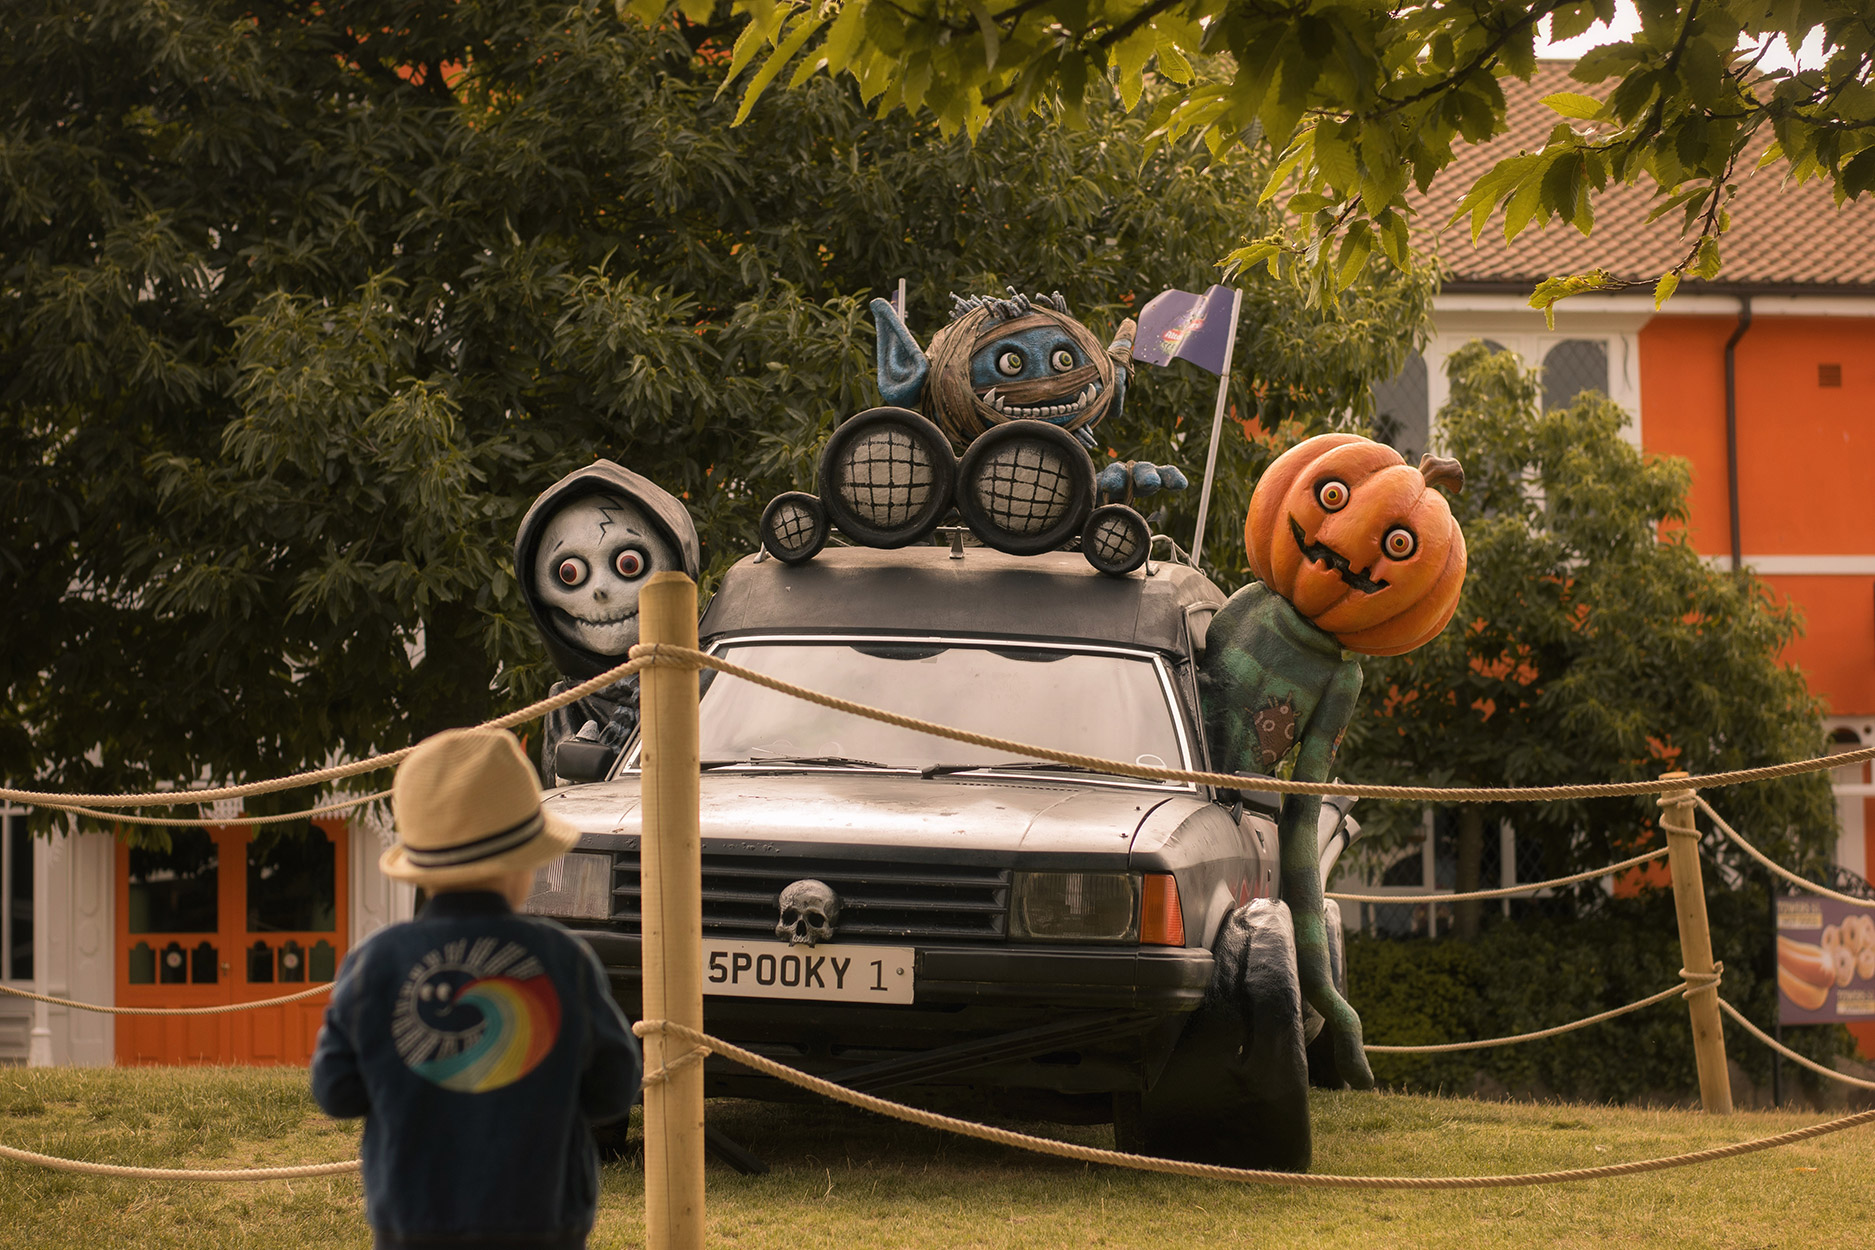 Pre-schooler boy wearing Bonnie Mob rainbow jacket looking at Halloween models and car with 'Spooky1' numberplate at Alton Towers Resort